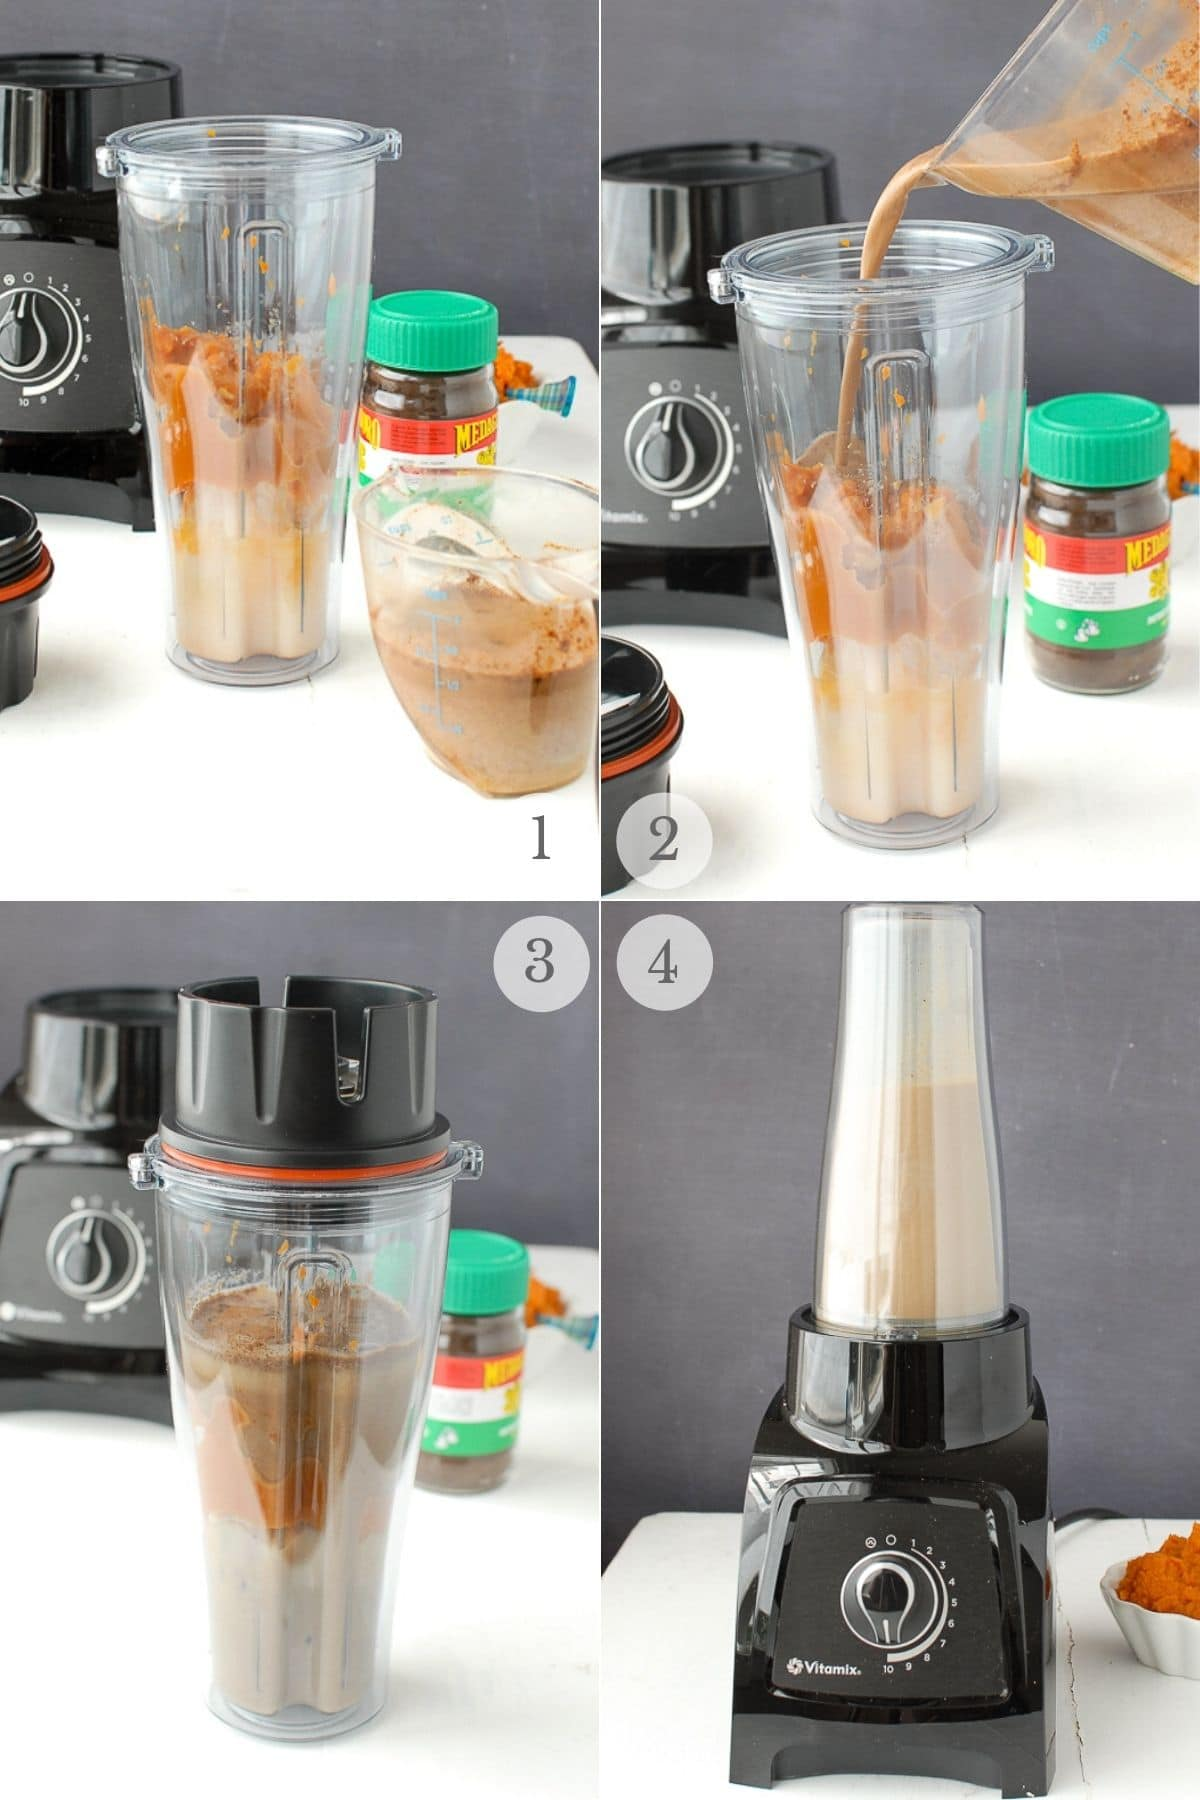 iced pumpkin spice latte recipe steps 1-4